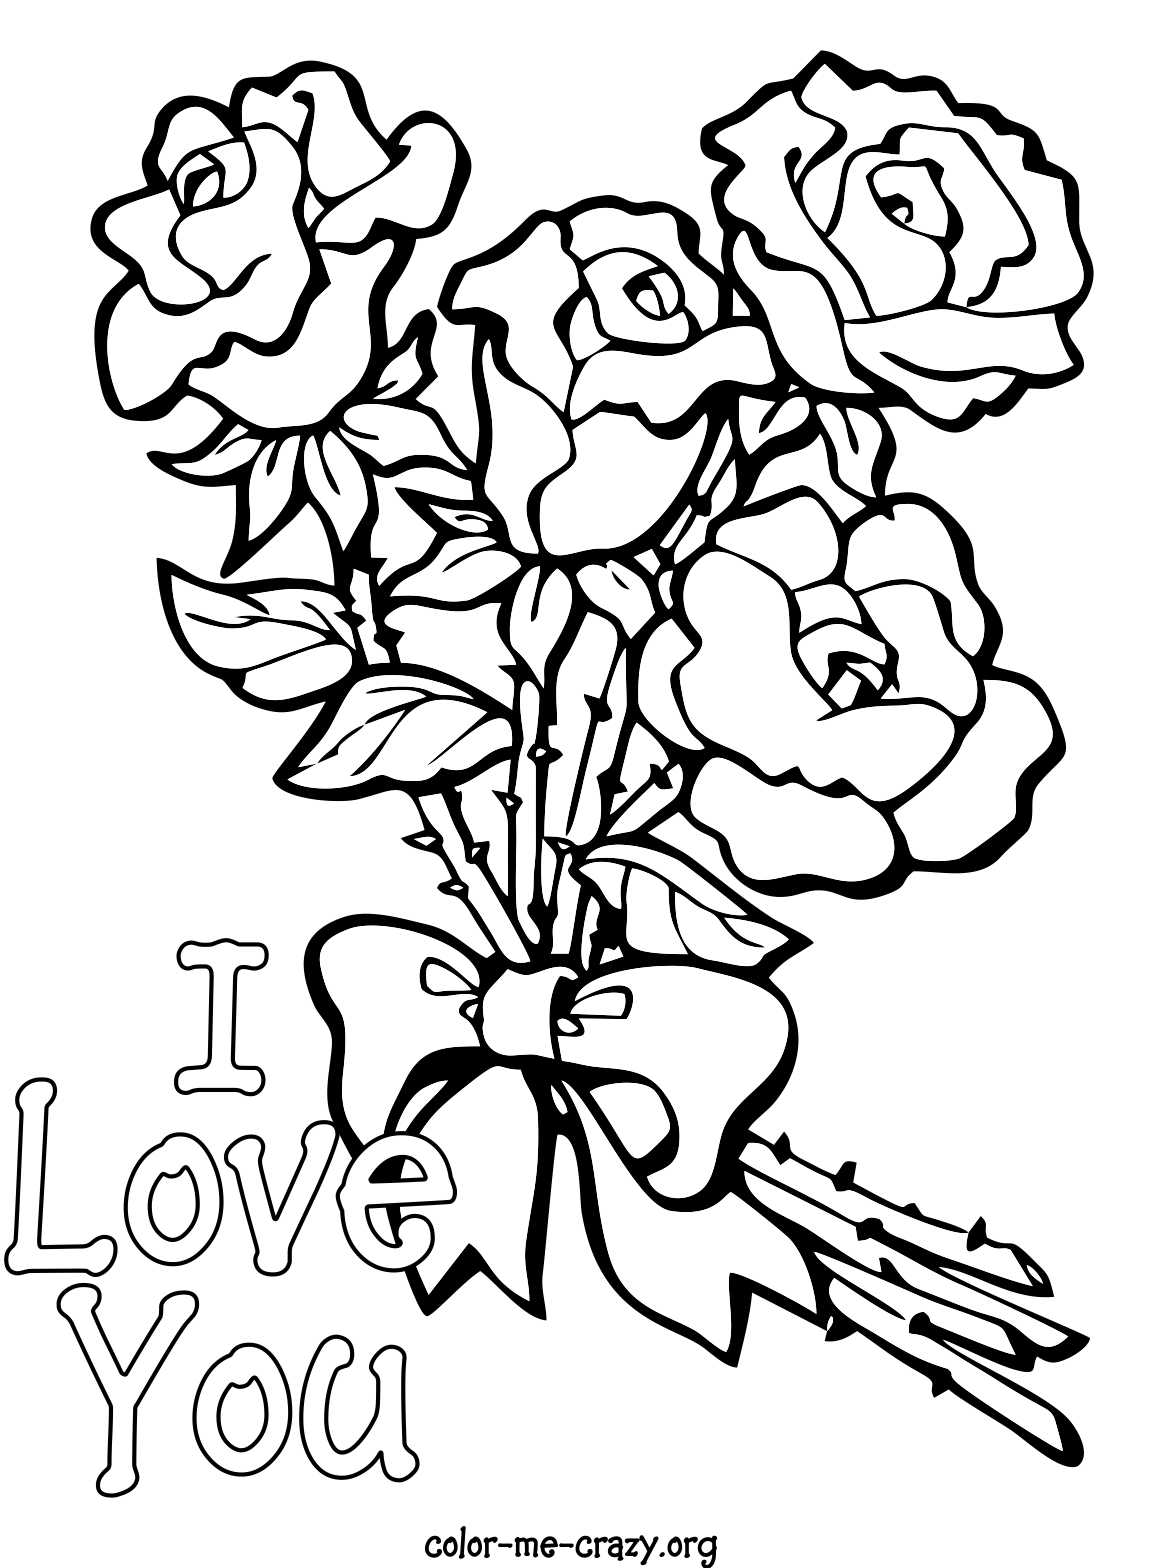 valentines coloring pages printable colormecrazyorg valentine coloring pages printable coloring pages valentines